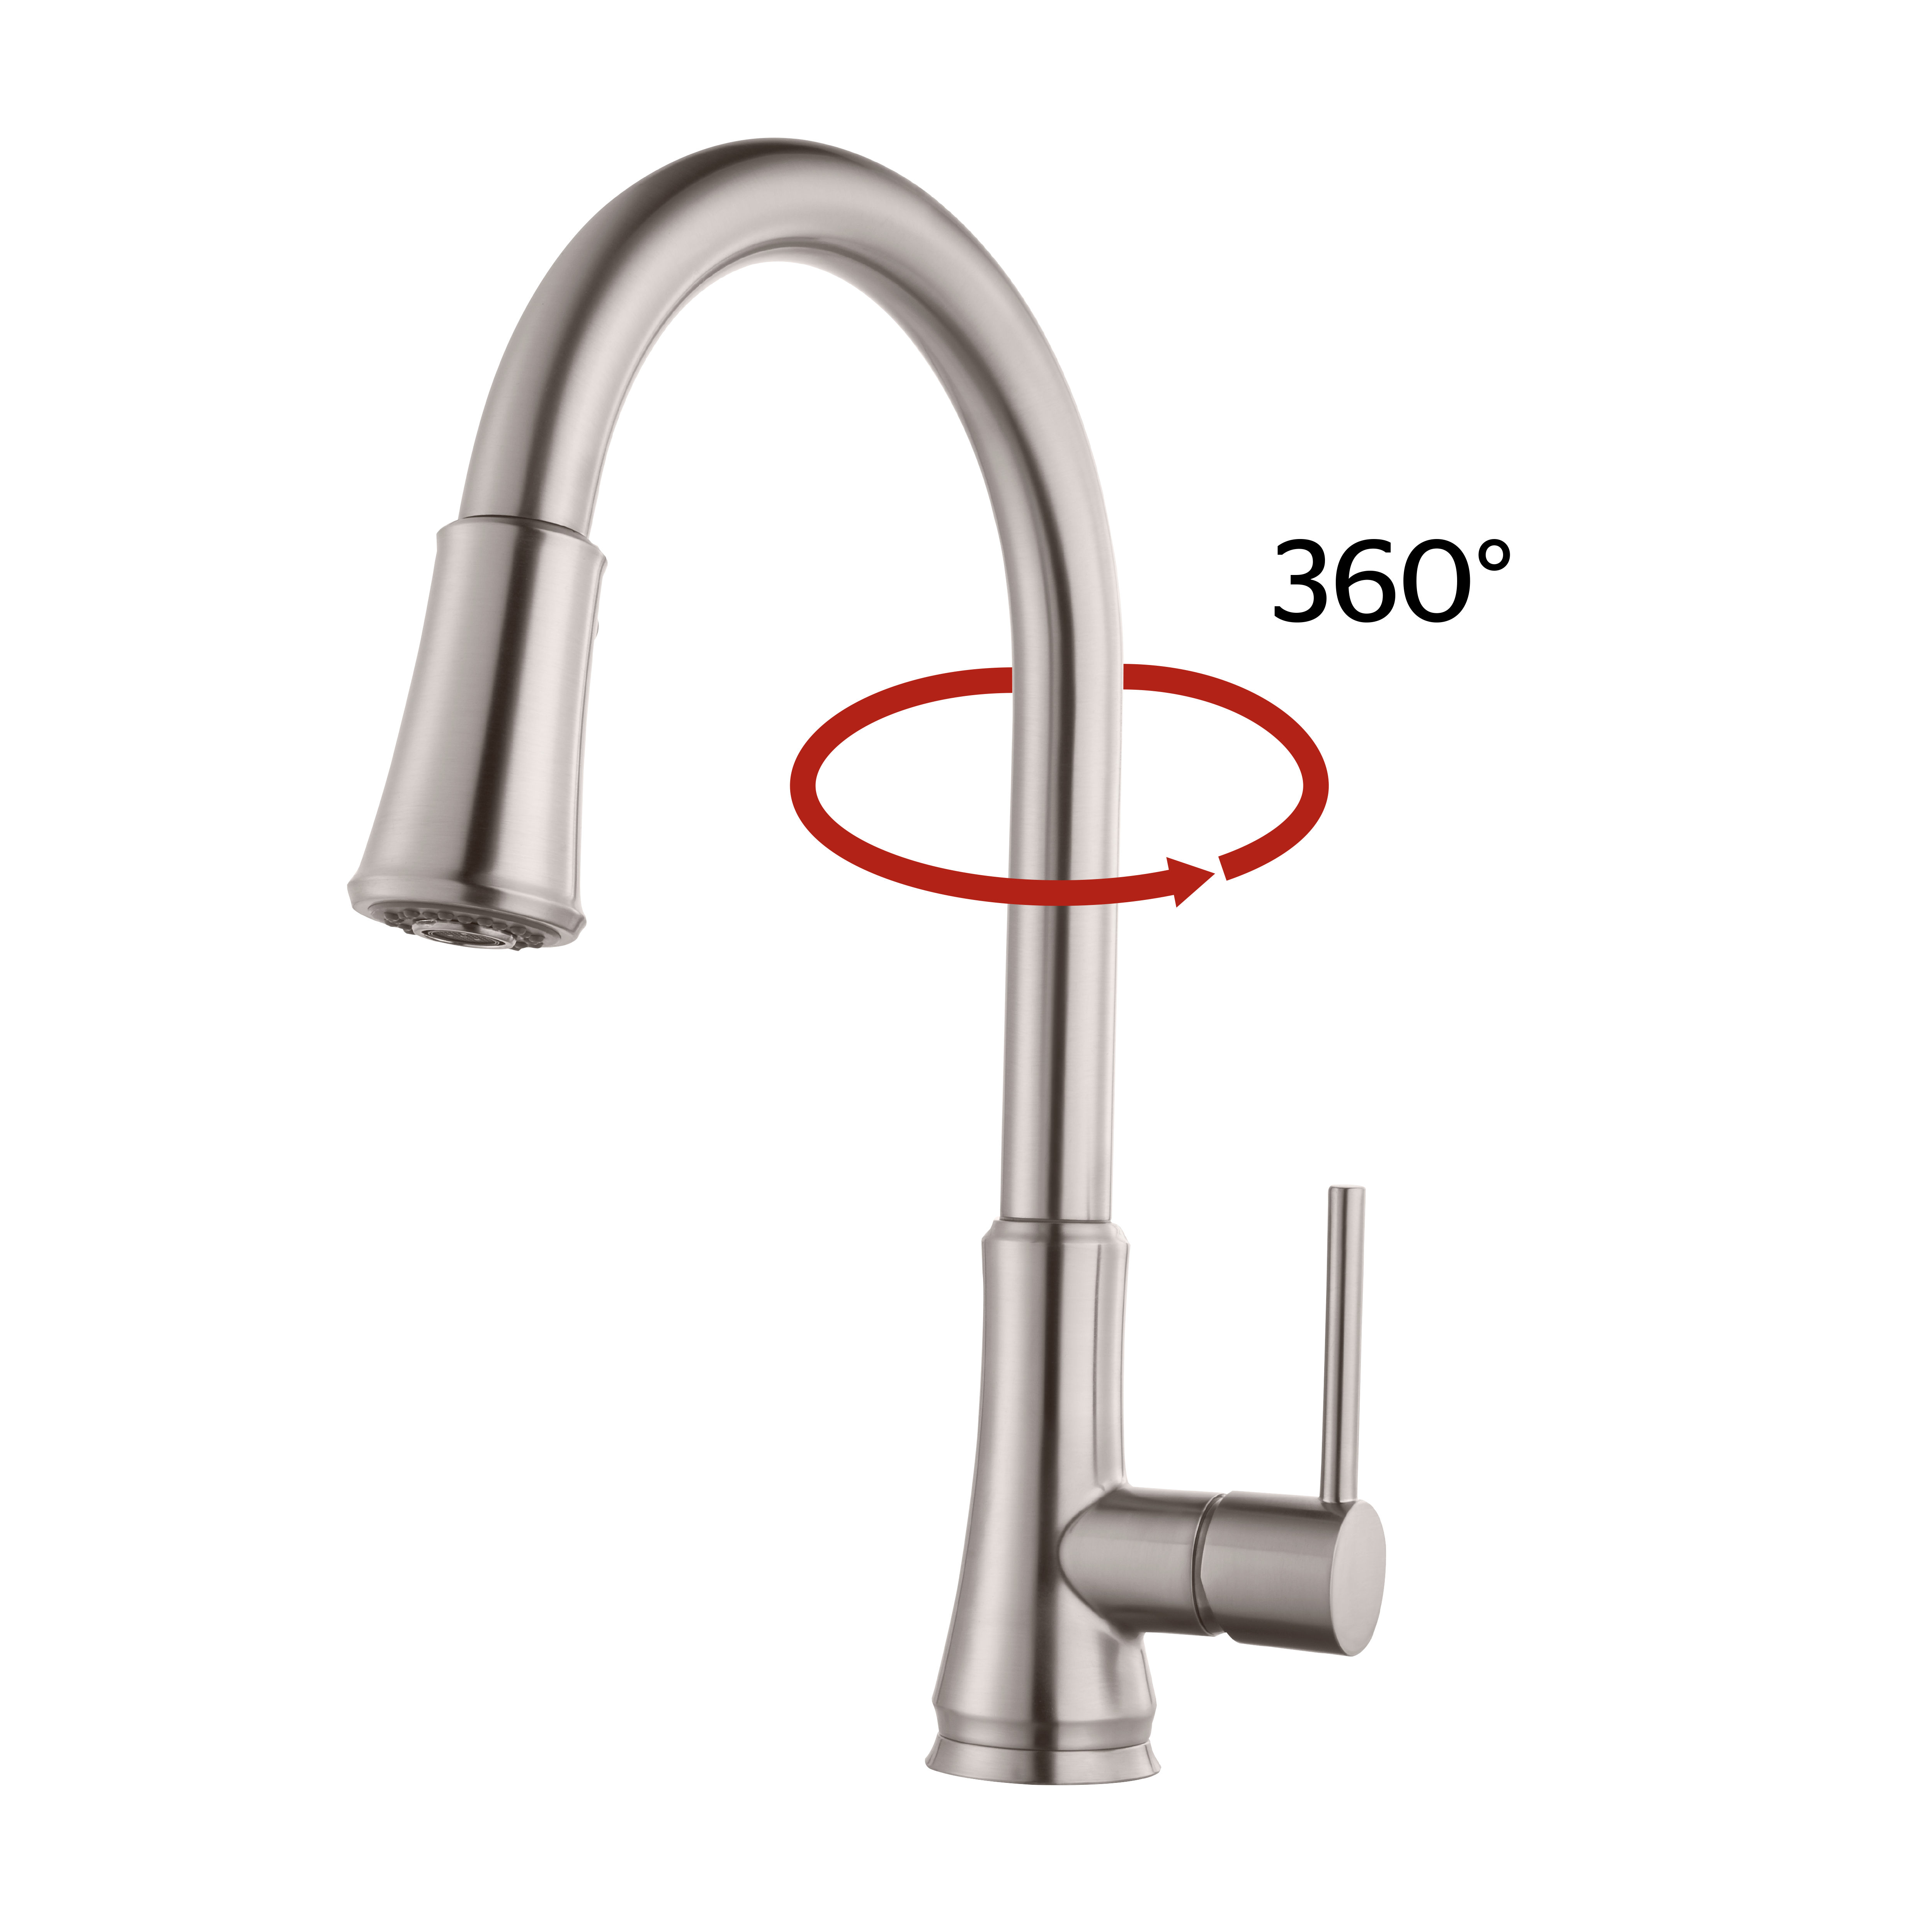 voss brantford faucet rubbed bronze degree price lowes moen how oil to bathrom bathroom pfister handle for s tighten enchanting brass shower tub ideas head